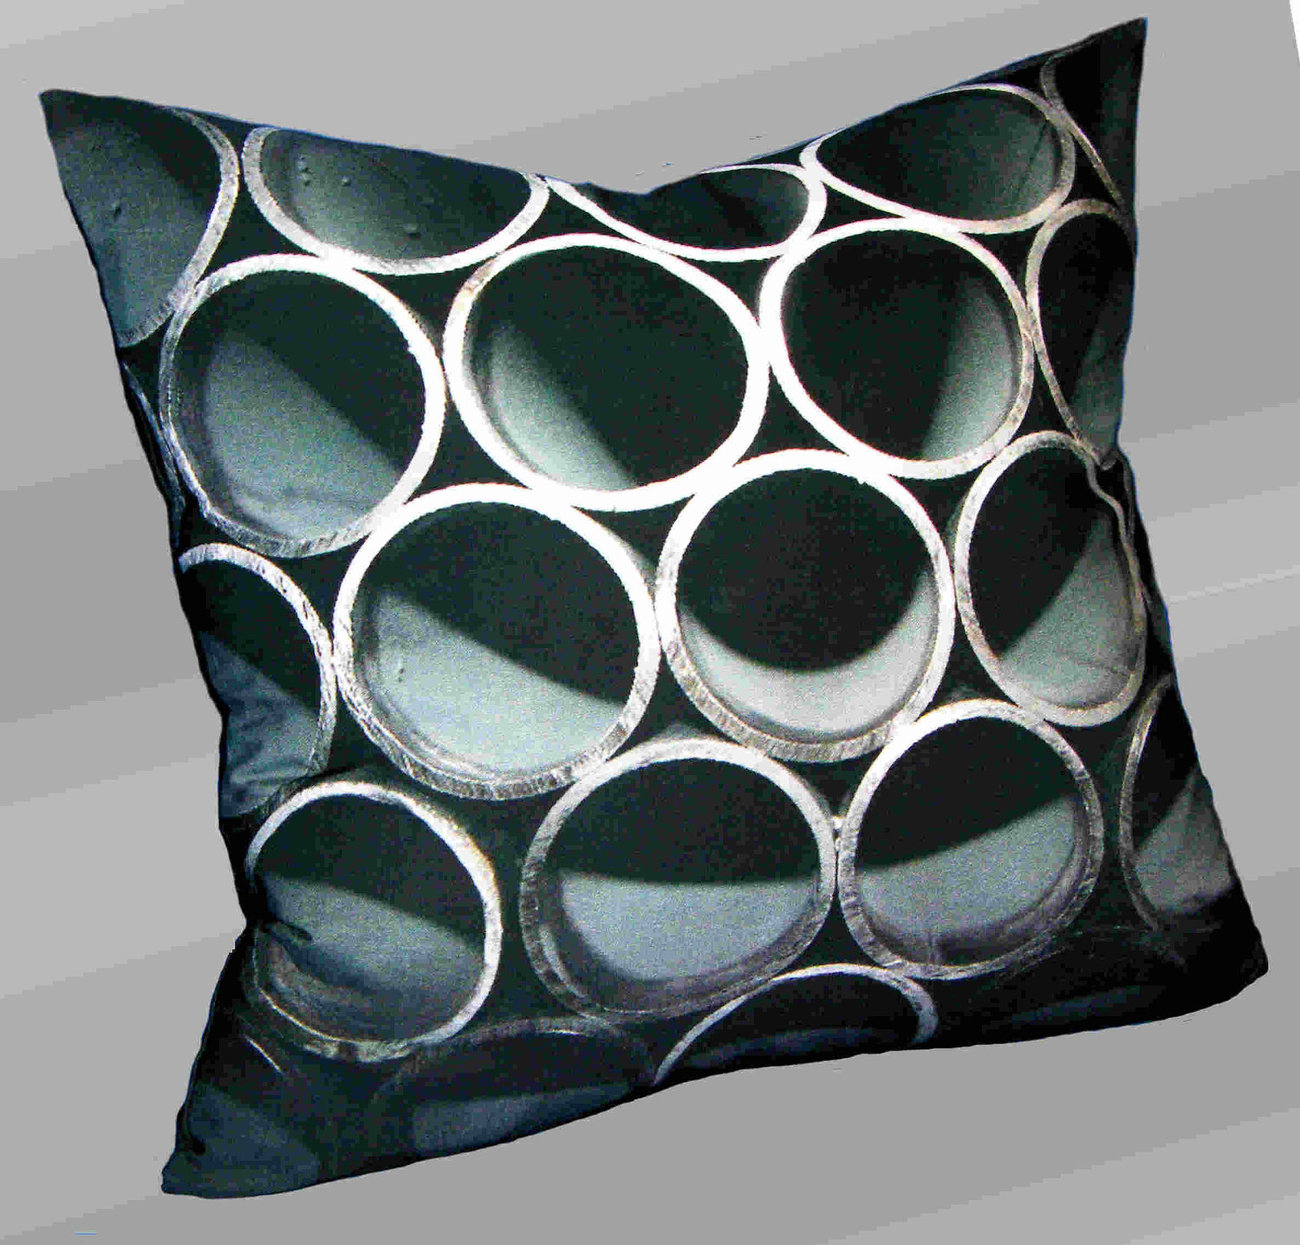 Steel Pipes on Bamboo fabric throw pillow - digital dye print, decorative throw